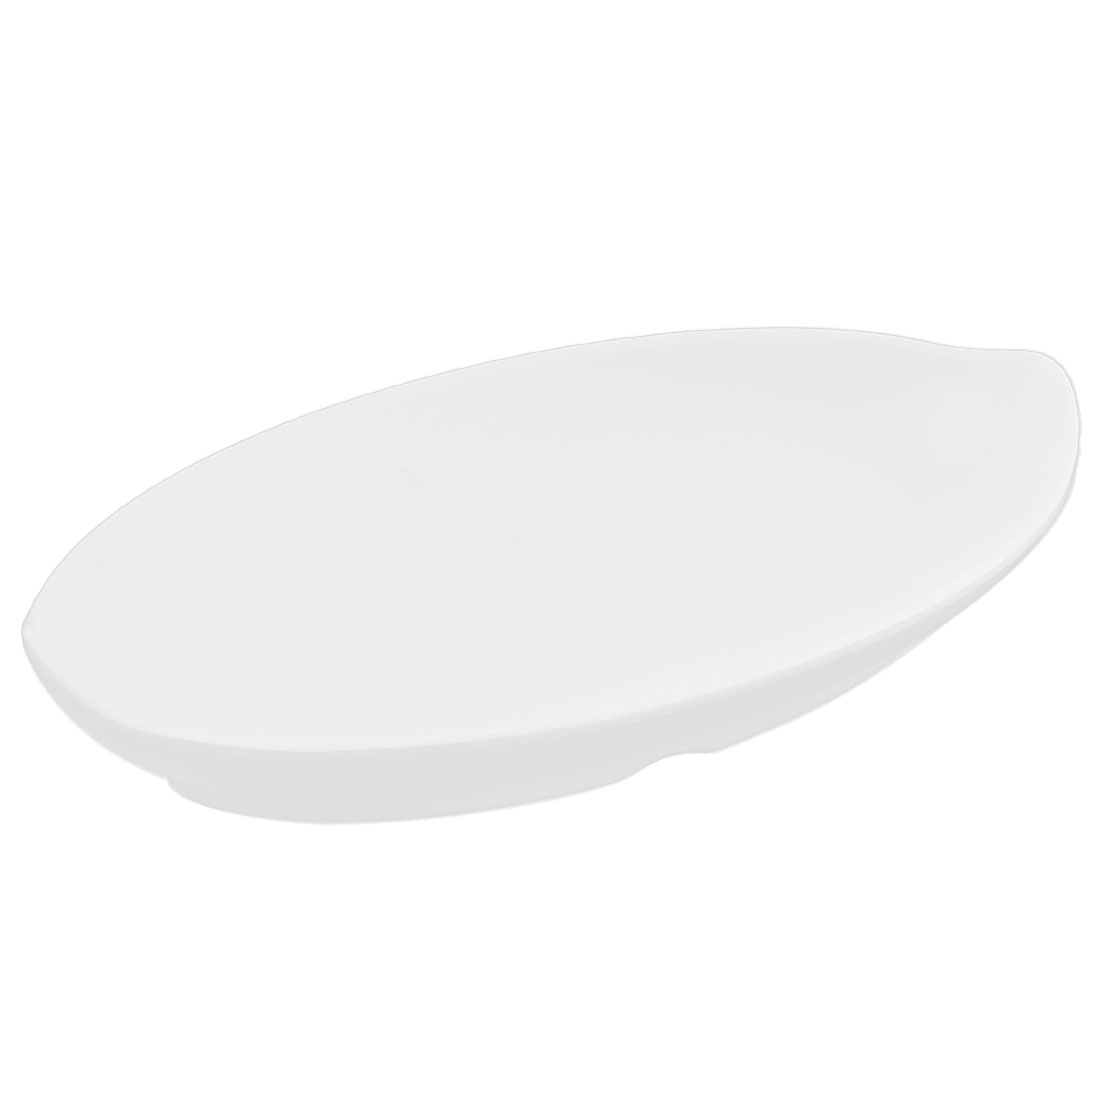 Home Restaurant Plastic Boat Dish Serving Bowl White